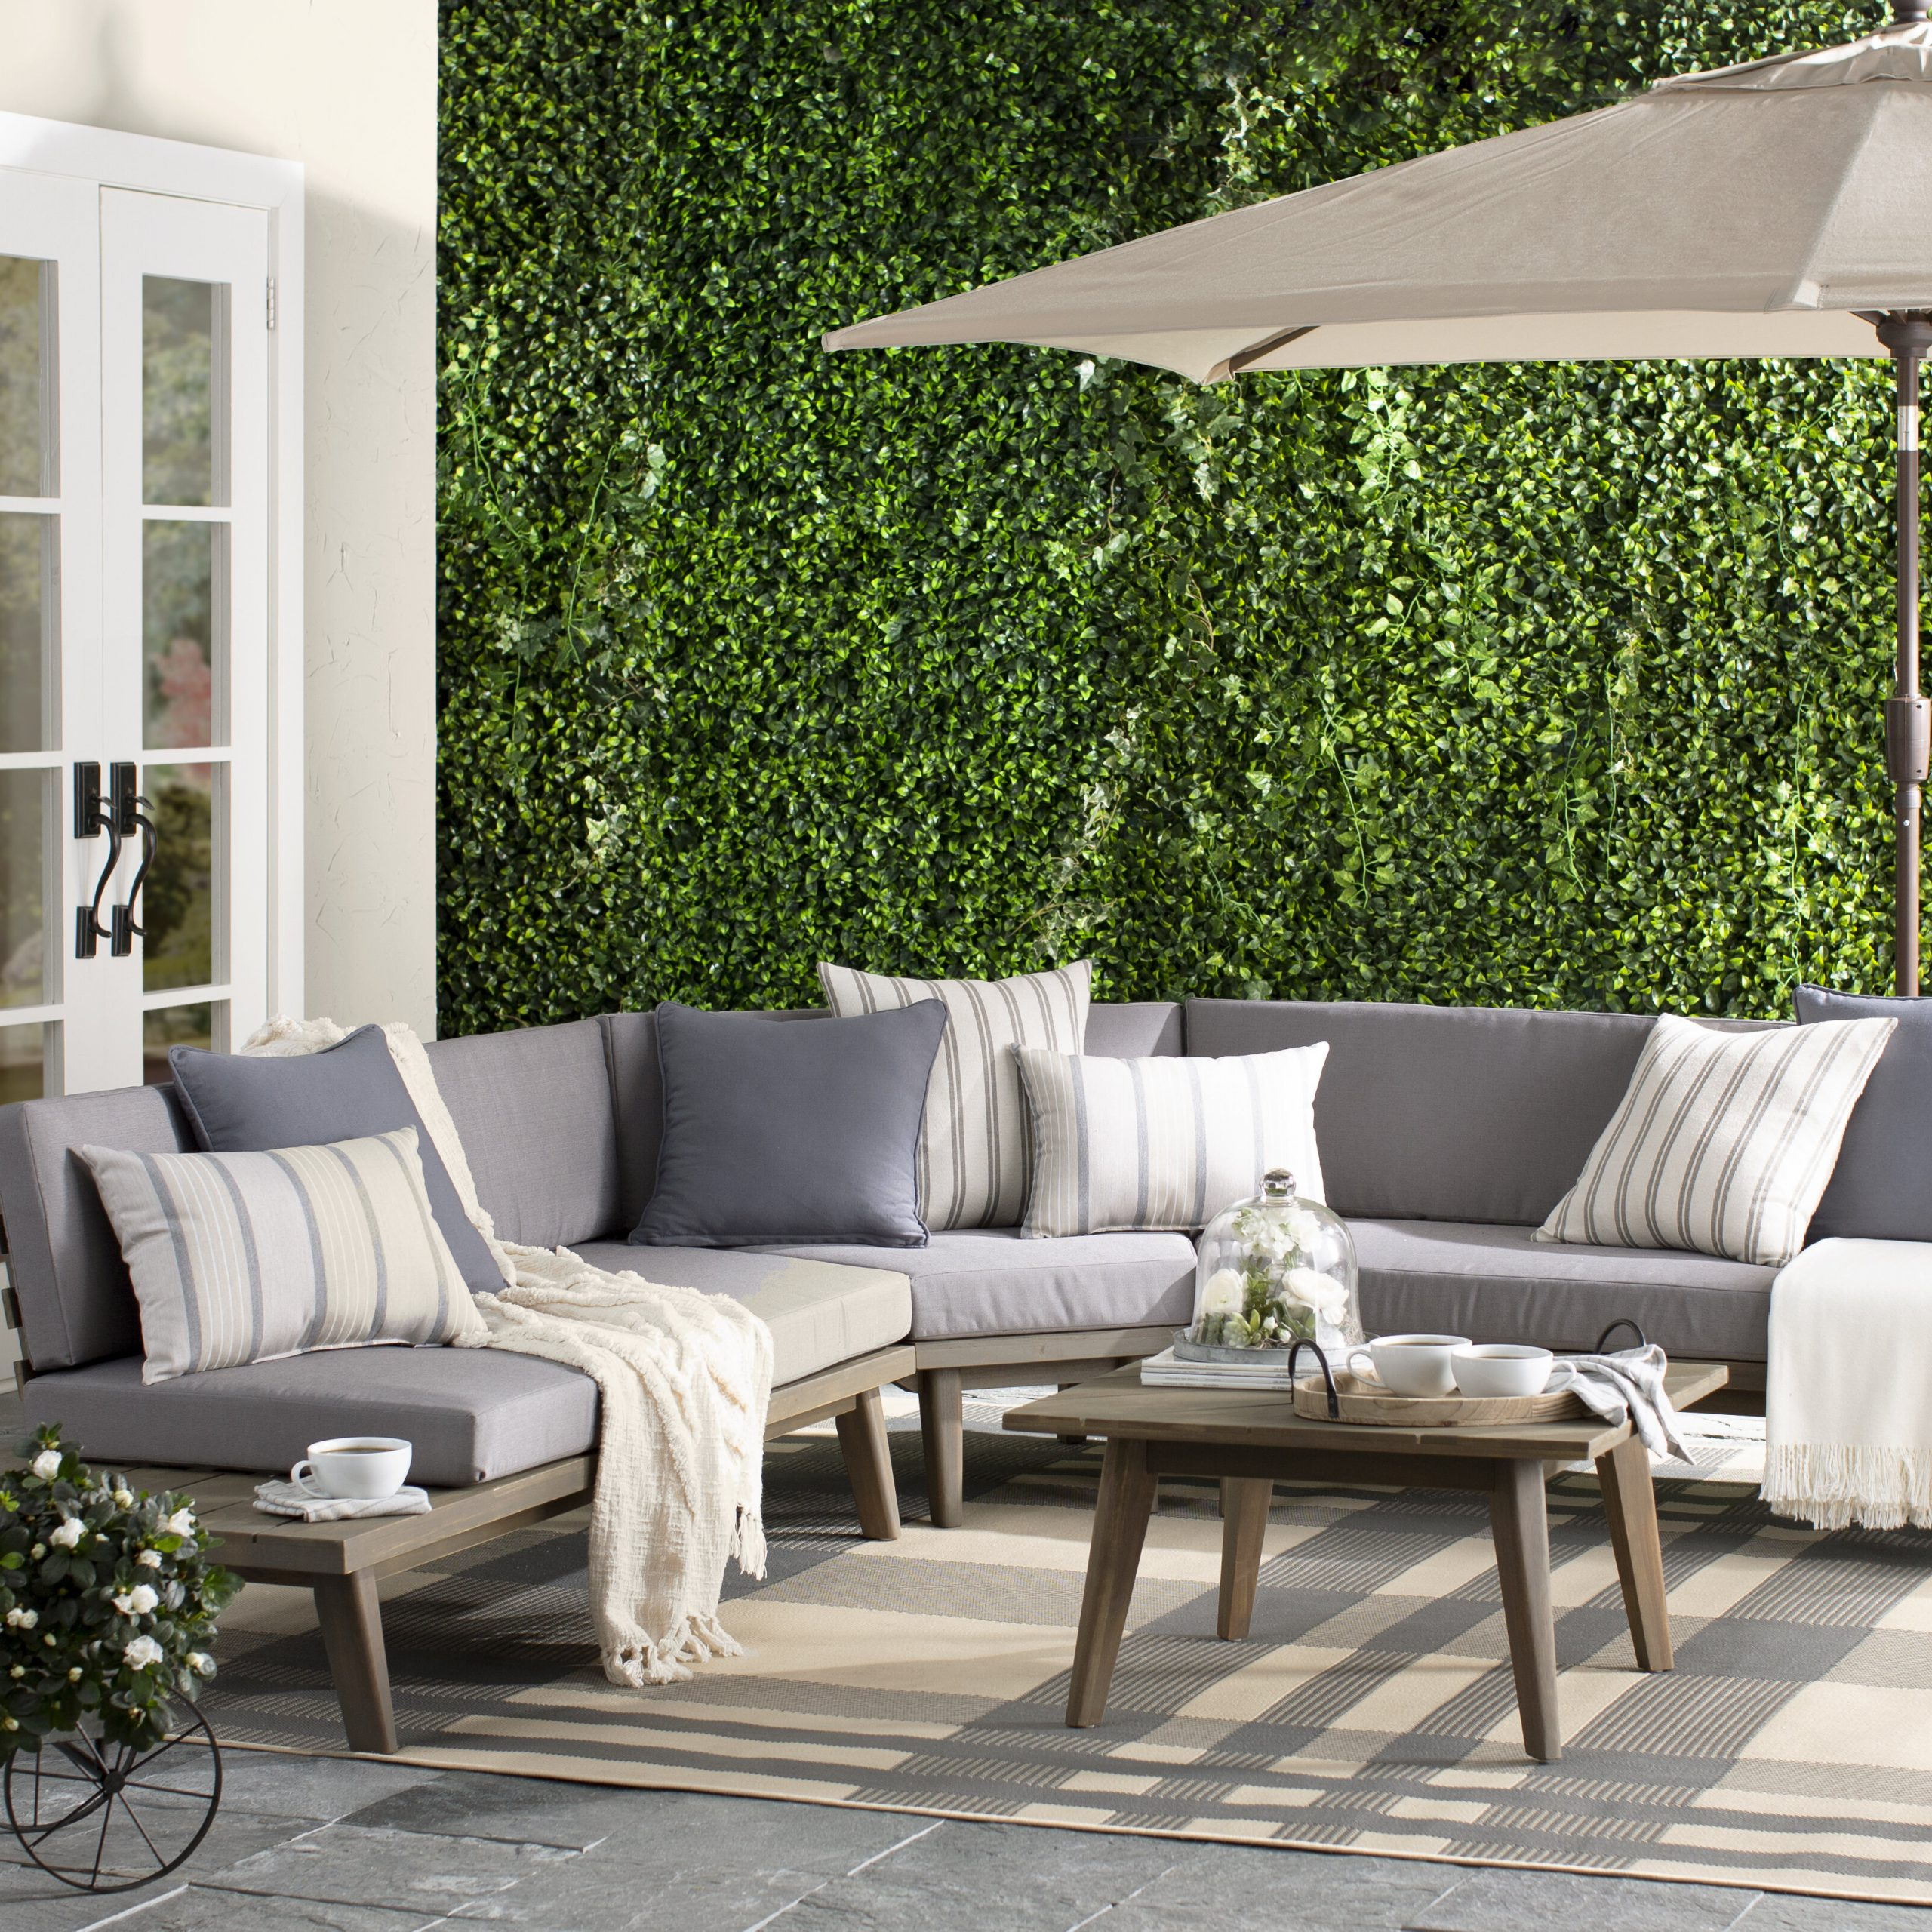 Calloway 4 Piece Sectional Seating Group With Cushions Pertaining To Popular Olinda 3 Piece Sectionals Seating Group With Cushions (View 6 of 25)